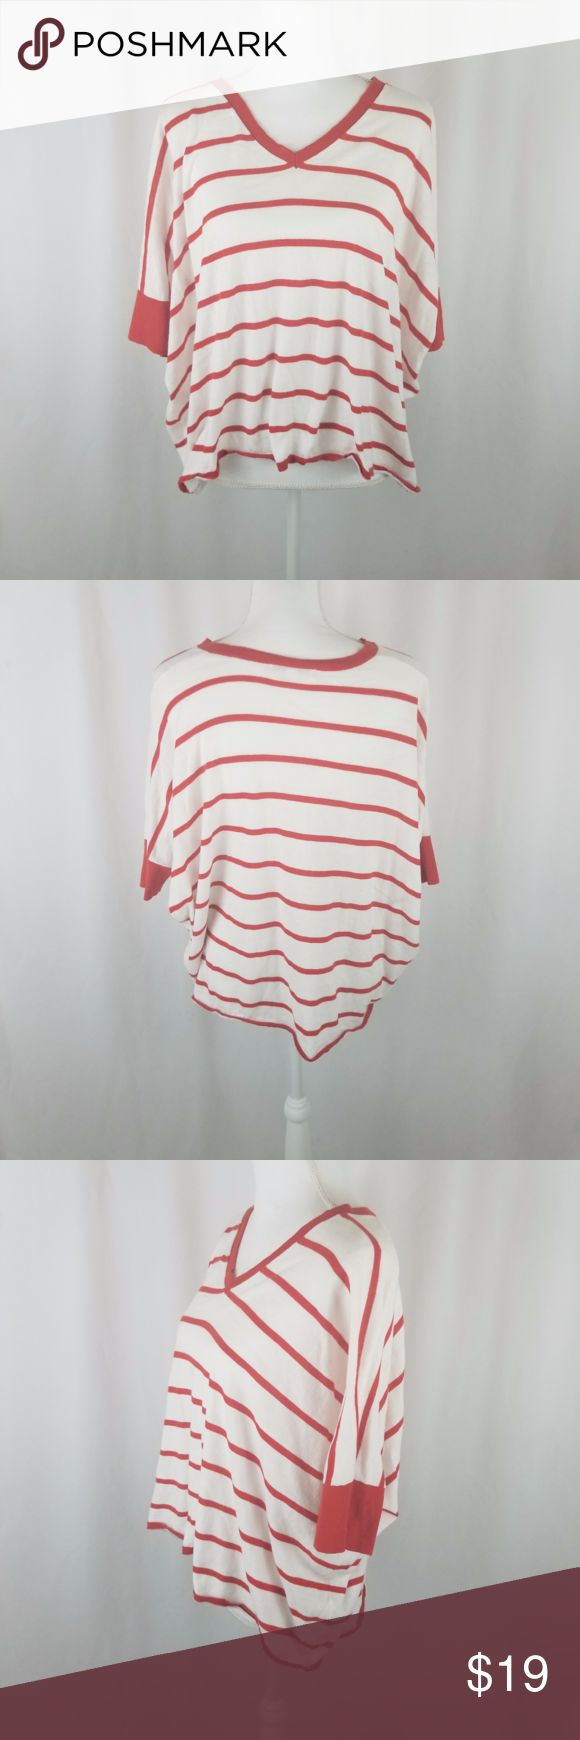 """CAbi Drop Shoulder Top Deep Orange Top M CAbi Drop Shoulder Top Deep Orange Top M  V Neck and Sleeves Lined in Deep Orange  Chest Armpit to Armpit 30.5"""" (laid flat not measured as would hang)  Length 22""""  All measurements taken while lying flat  (036) CAbi Tops"""